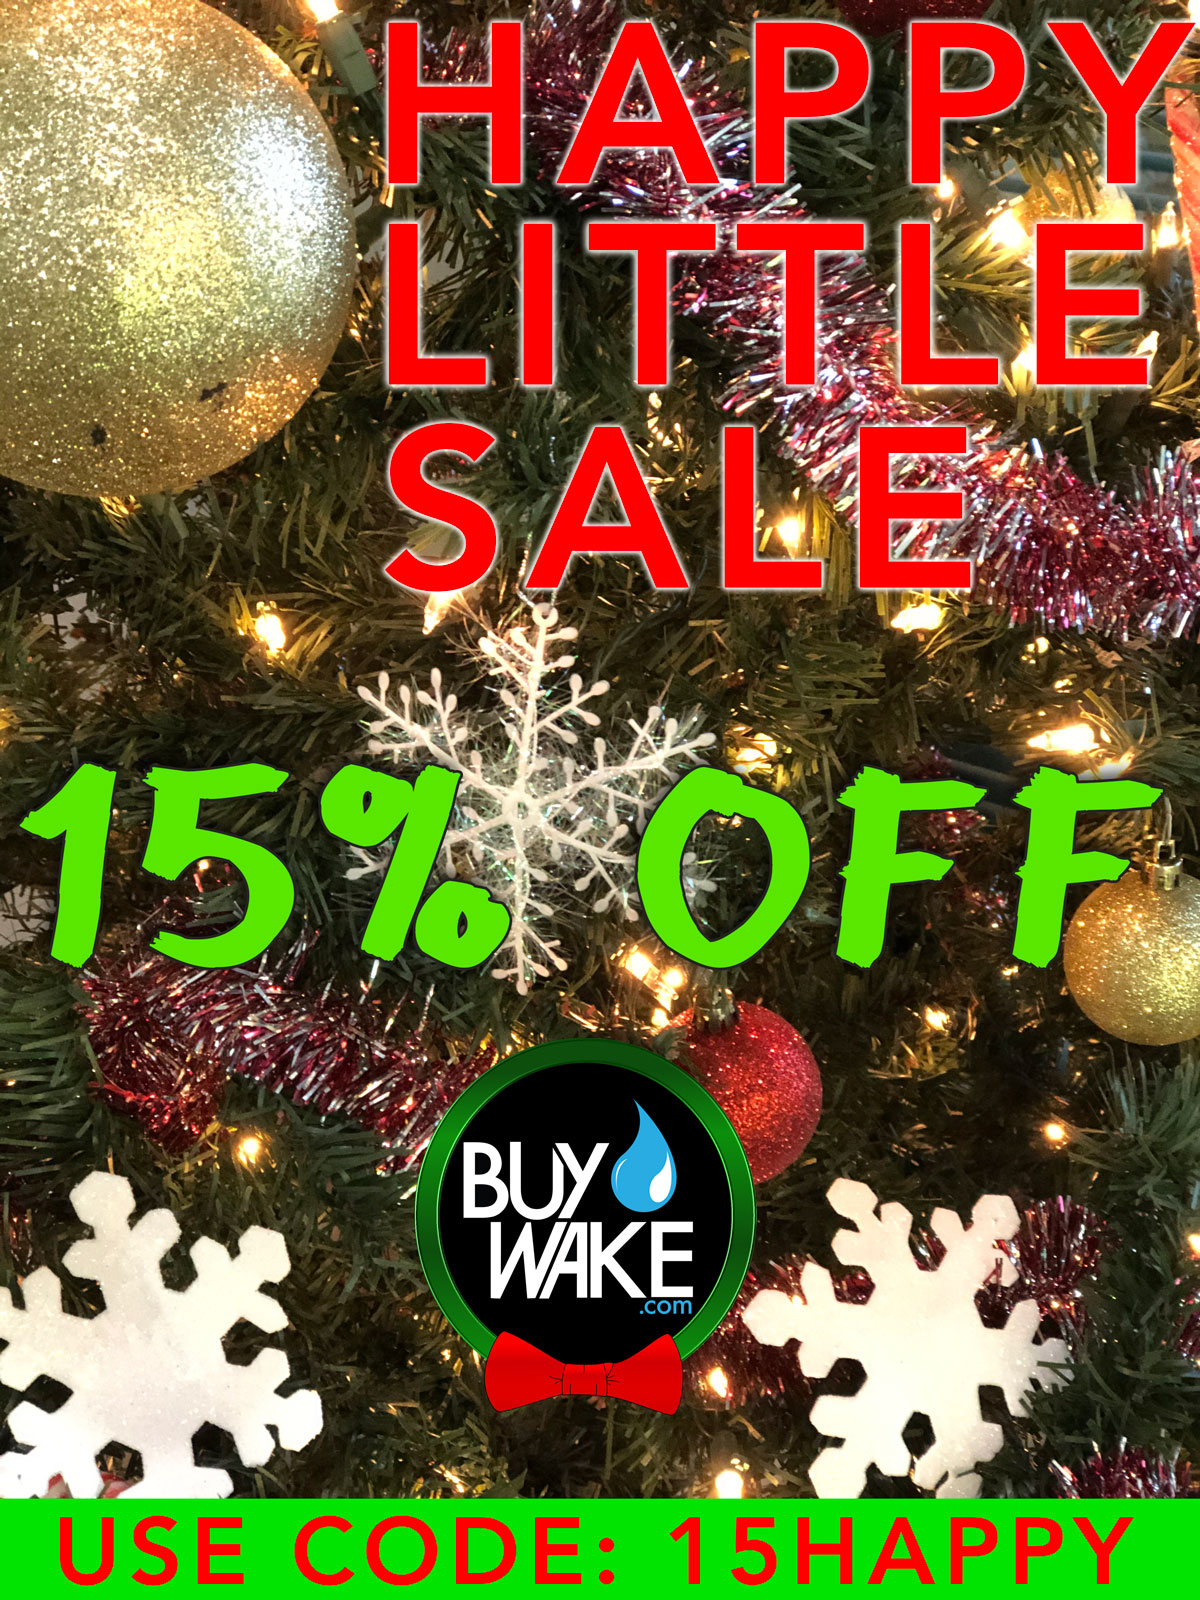 BuyWake.com Happy Little Holiday Sale 2019 - Save 15%